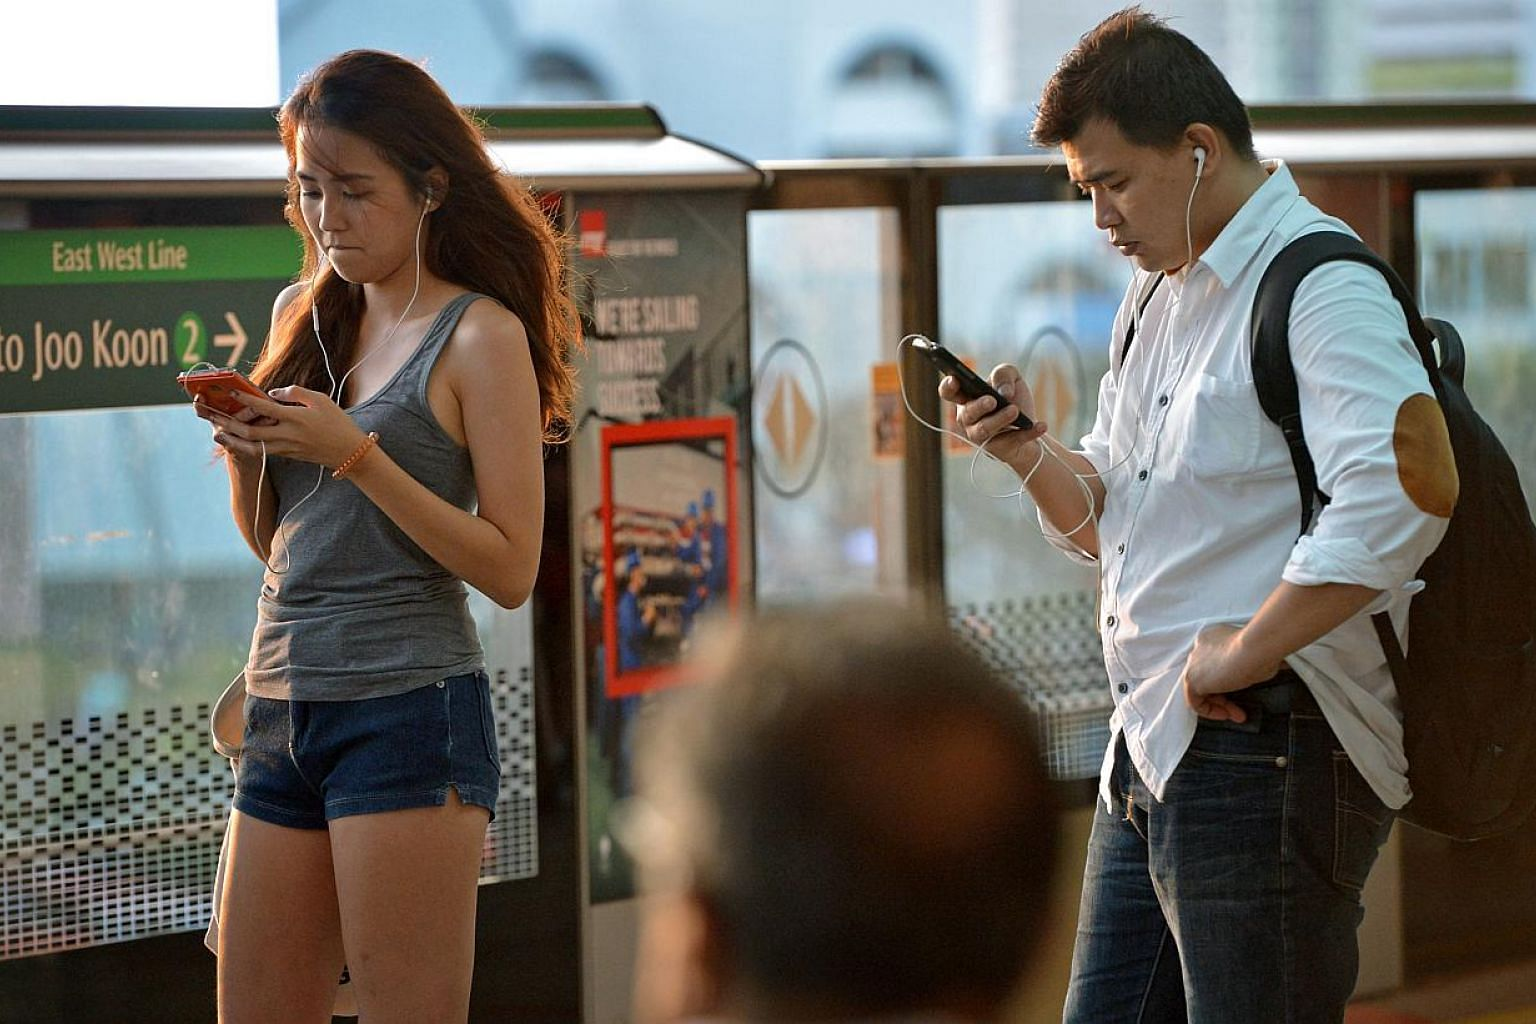 Trials for a new network that willallow commuters to surf seamlessly at up to 1Gbps with no fears of disruptions will begin at MRT stations early next year. -- ST FILE PHOTO